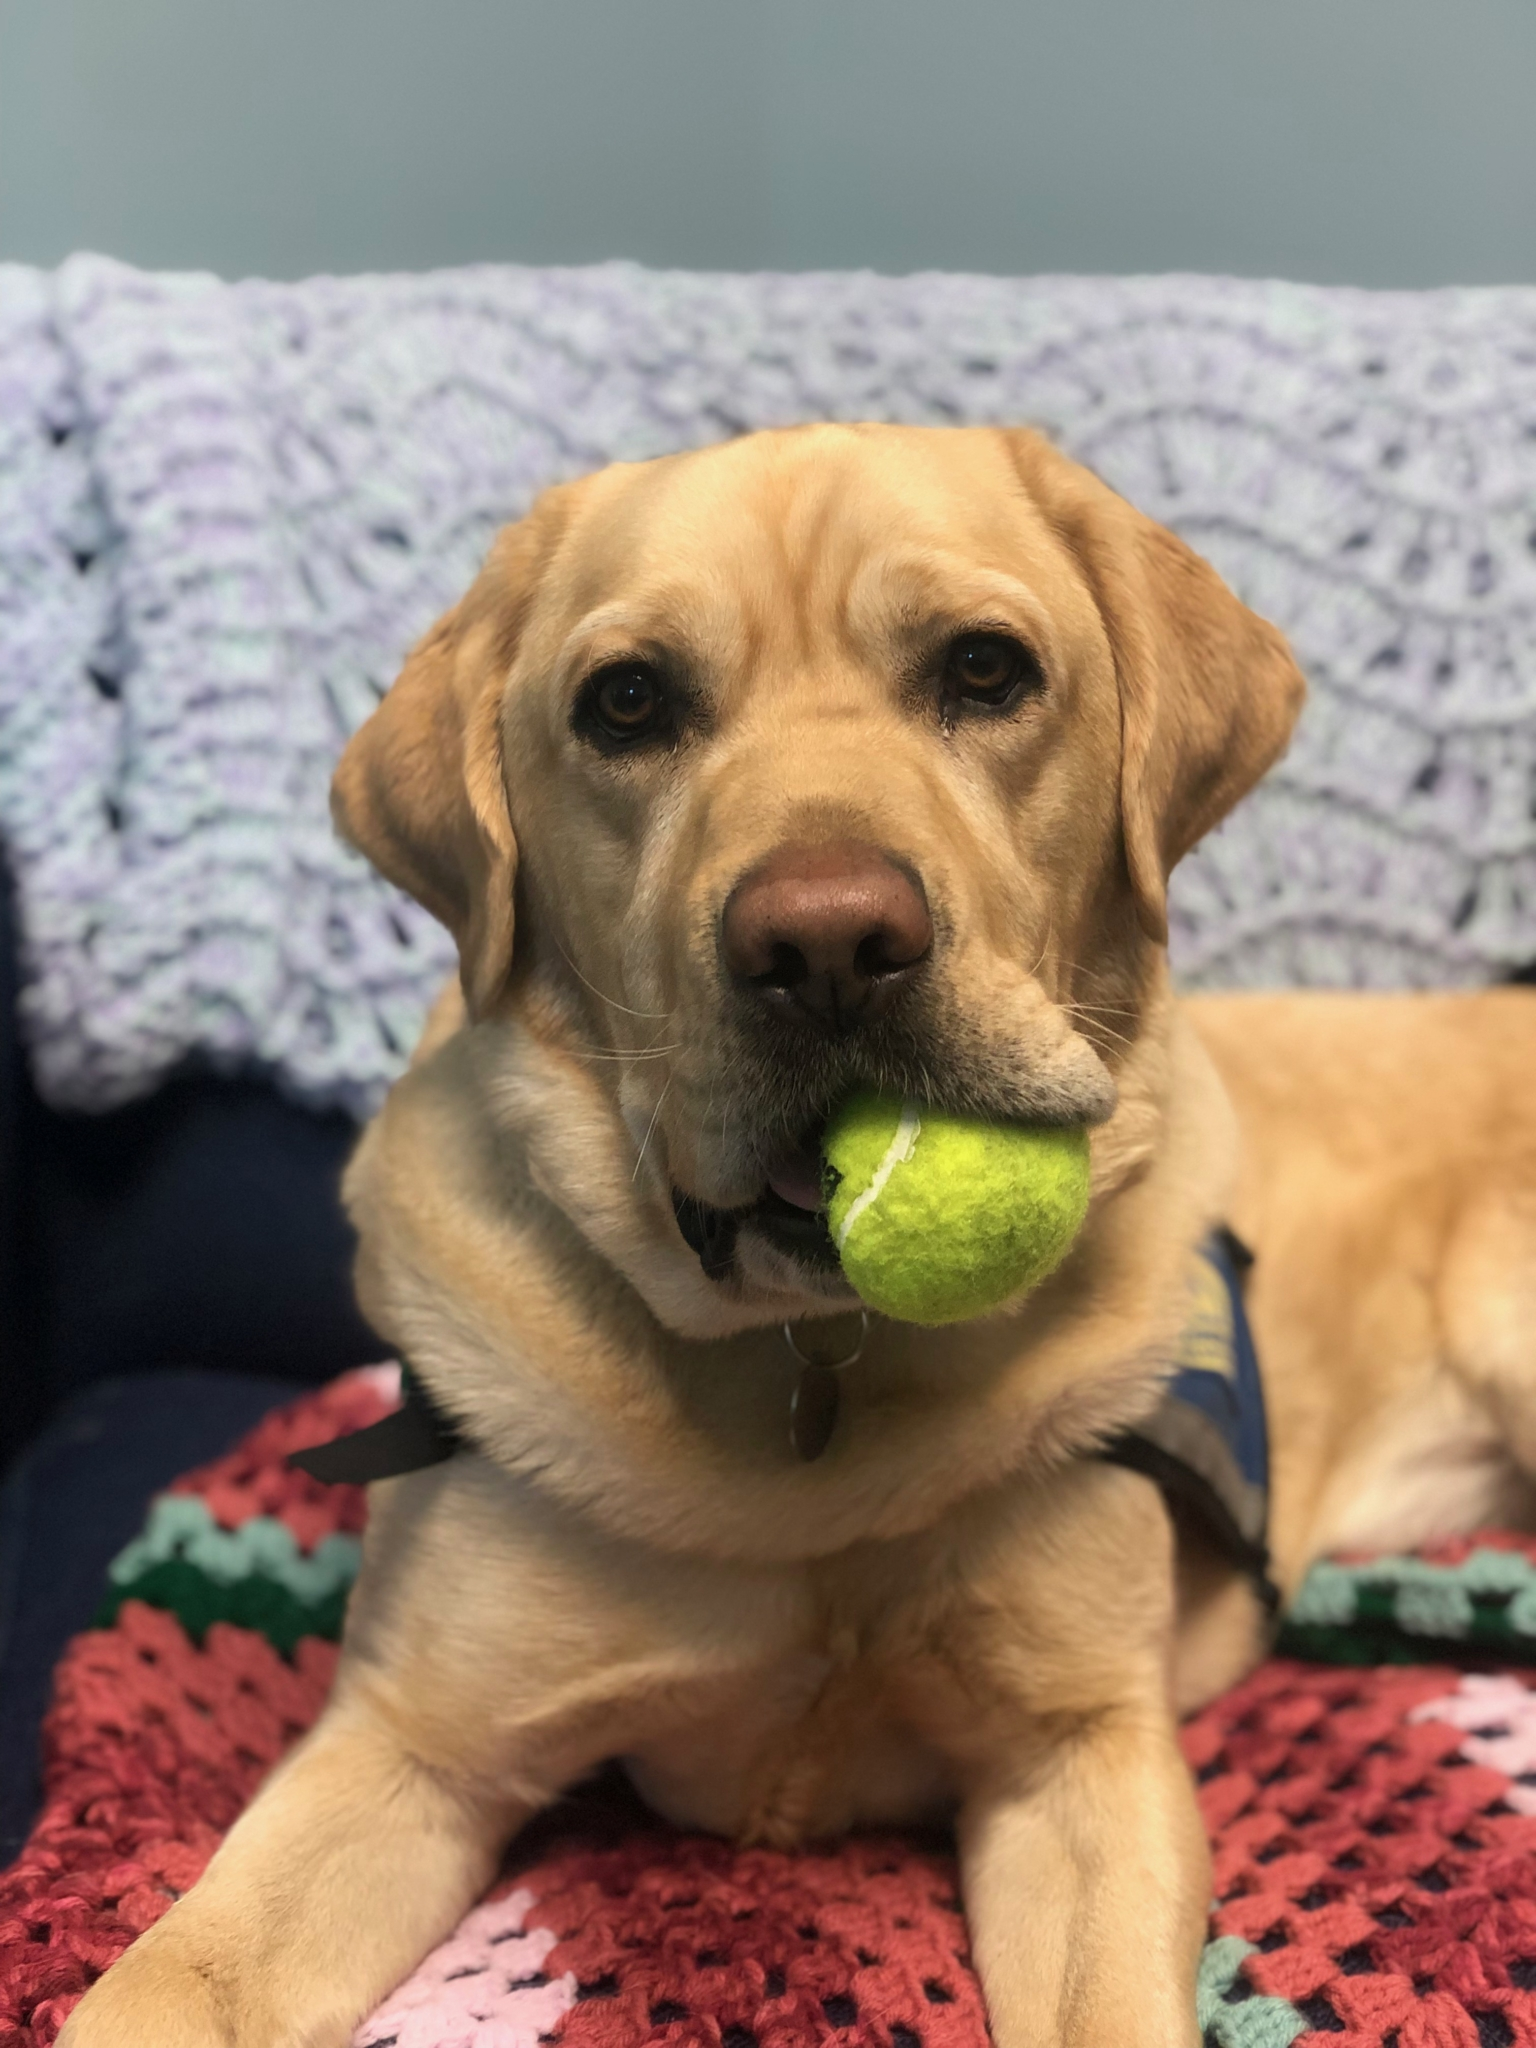 Facility dog Pongo with a tennis ball in his mouth